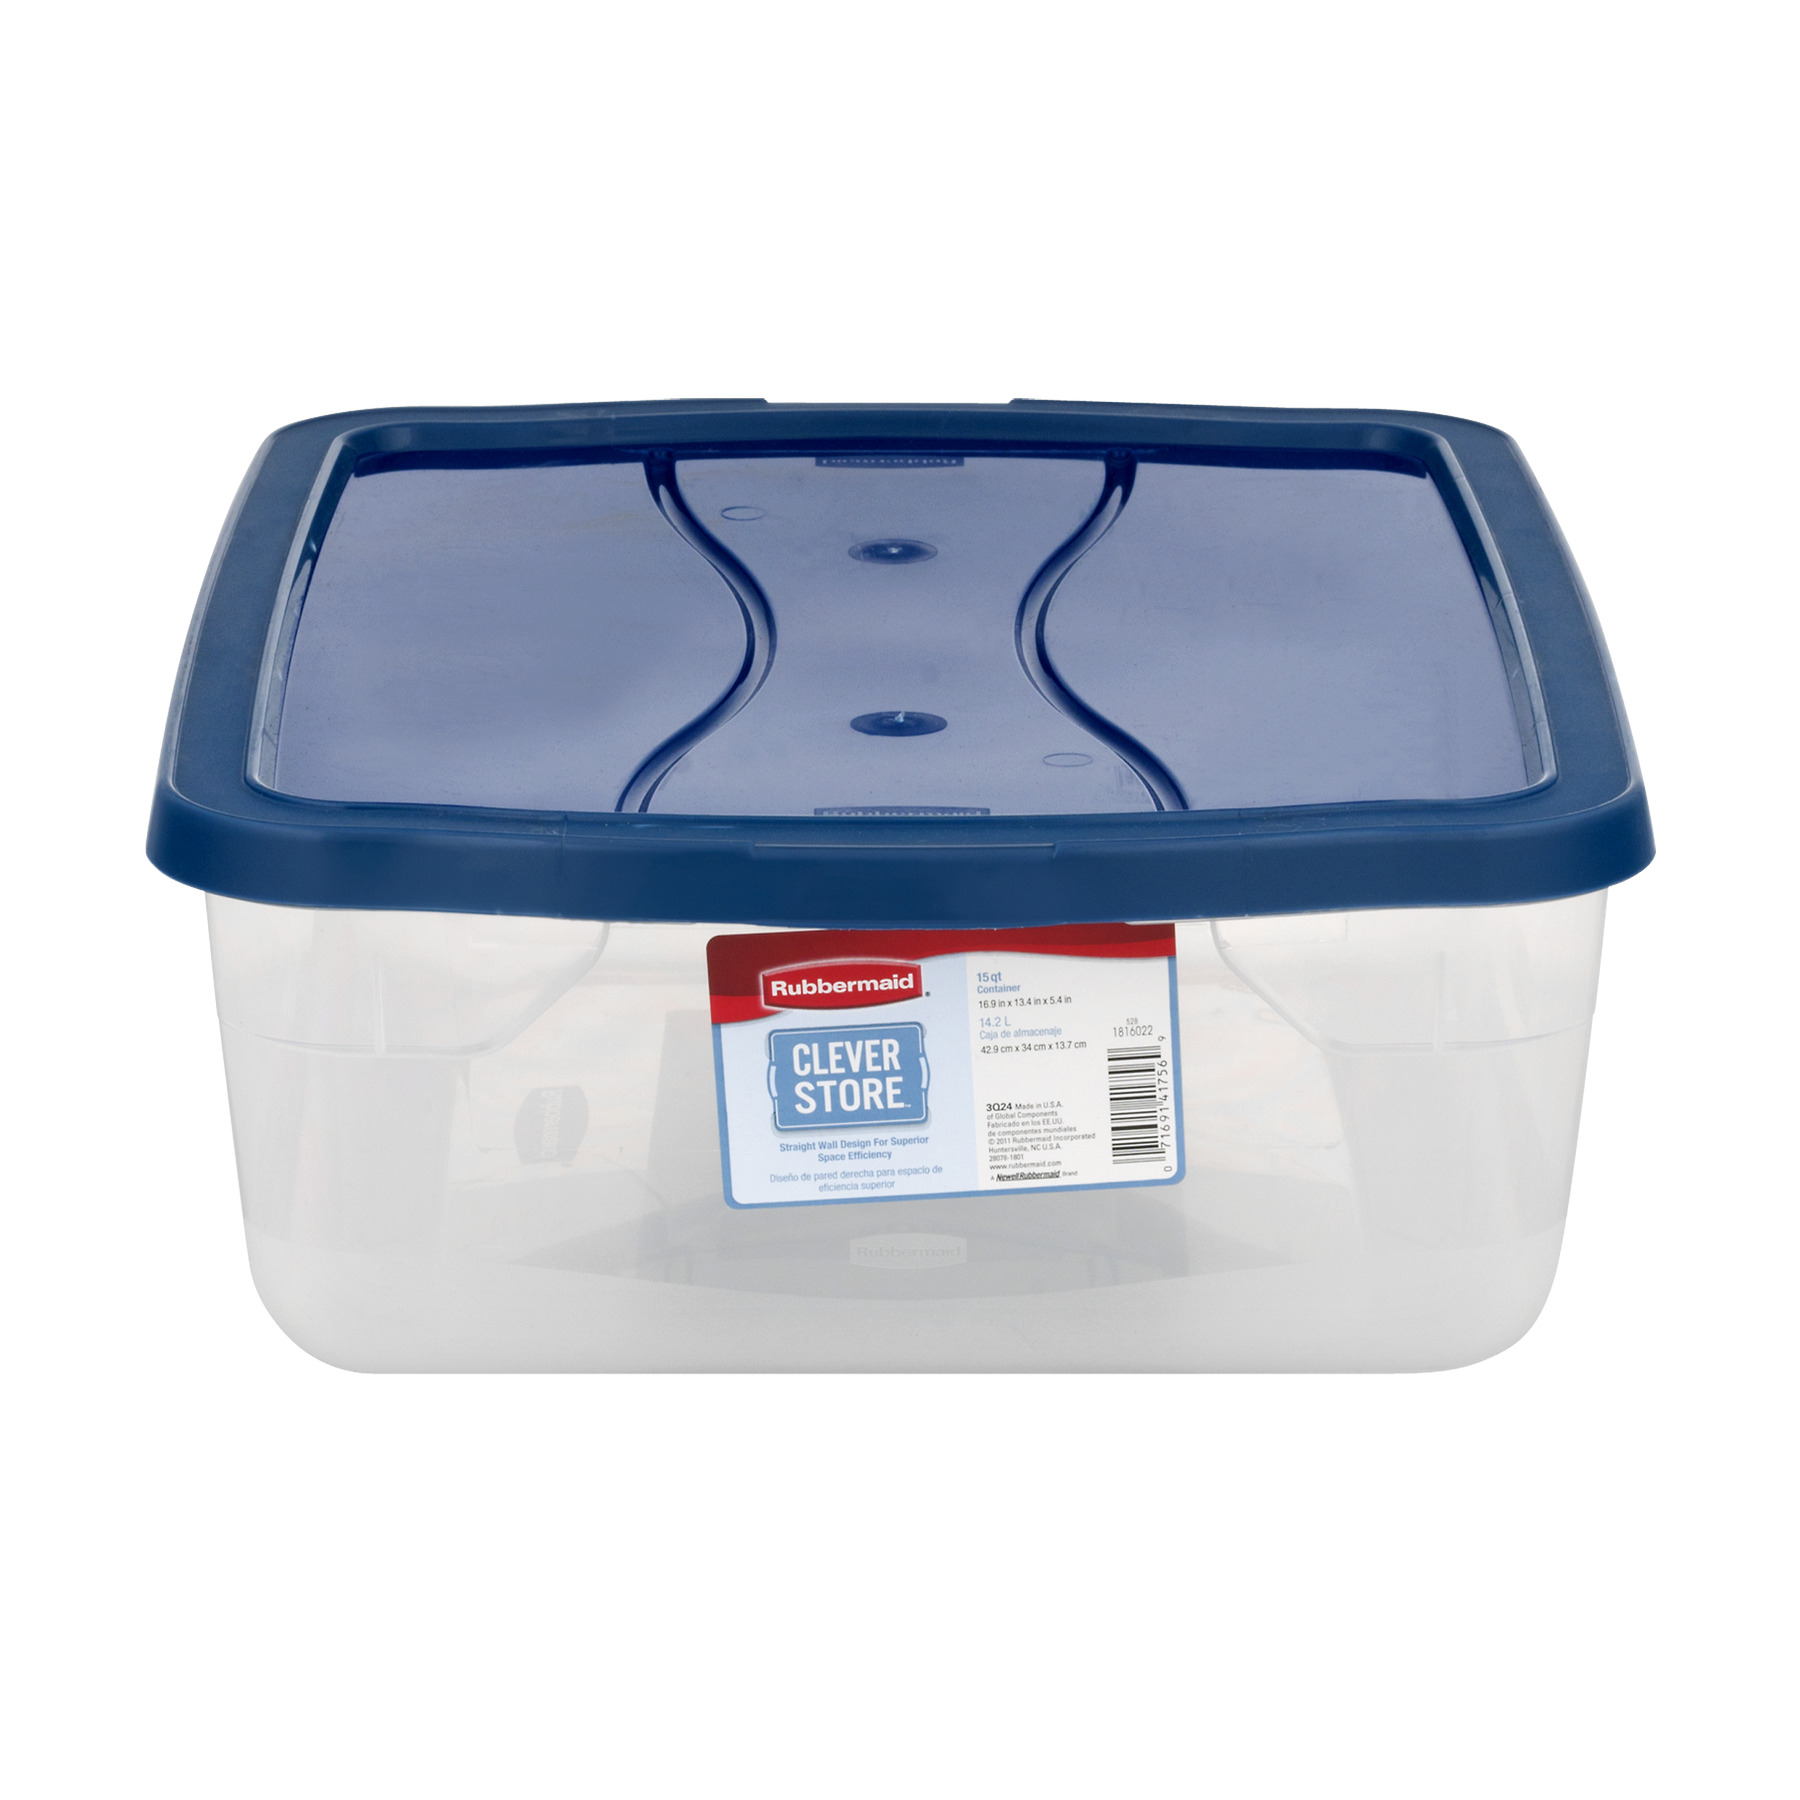 Rubbermaid Clever Store Clears Storage Container, 15 qt, Clear with Blue Lid